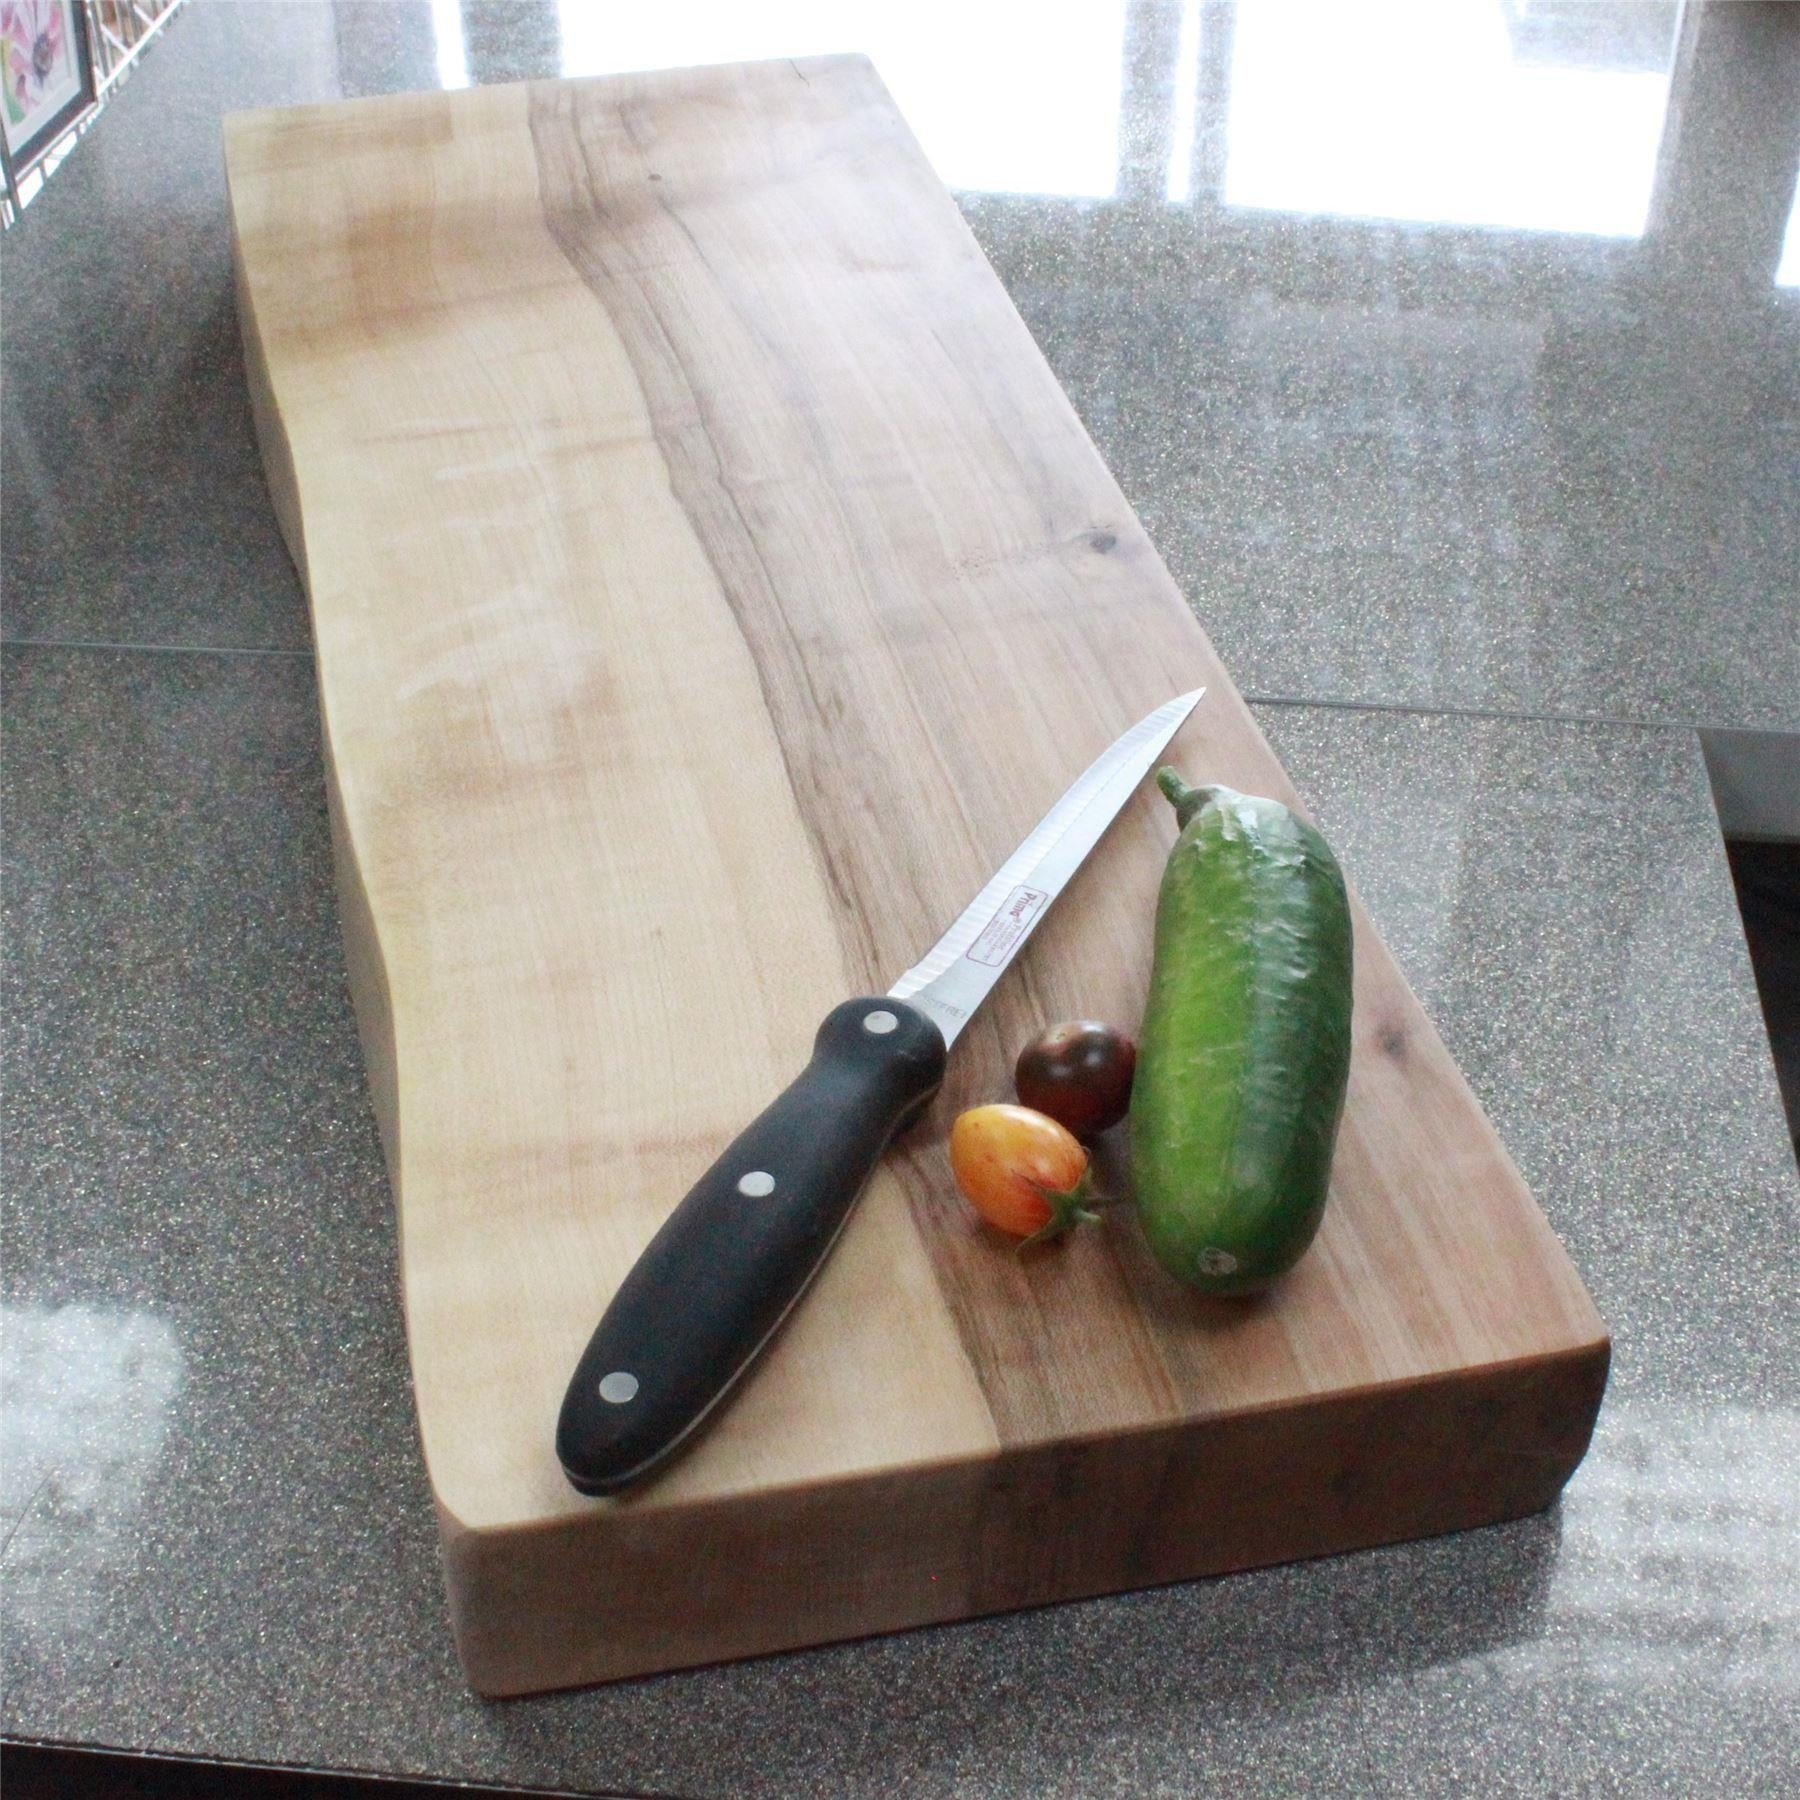 wooden chopping board one live edge thick solid Ash